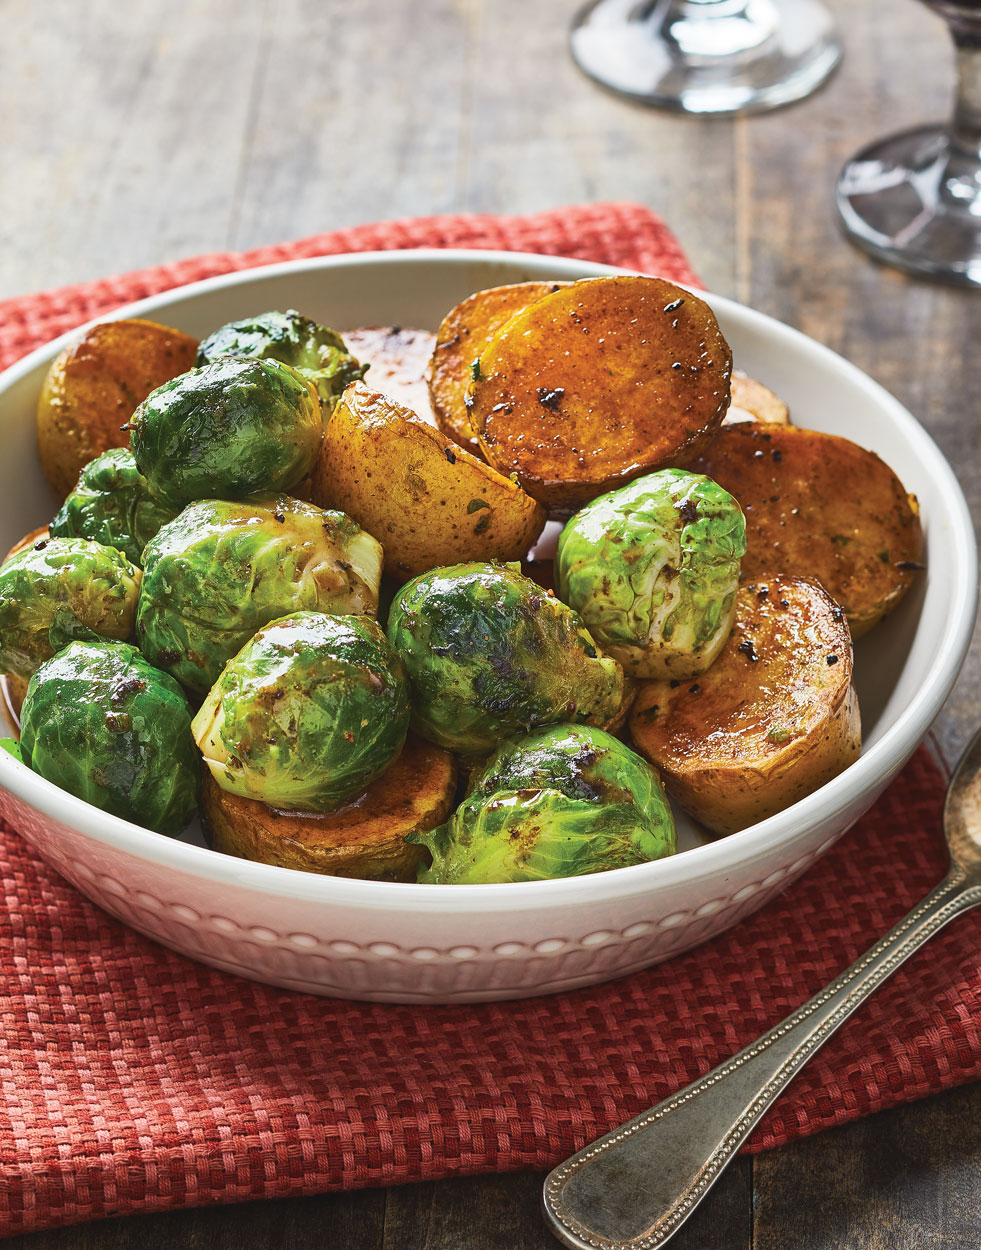 Fondant Potatoes & Brussels Sprouts with Velvety Pan Sauce